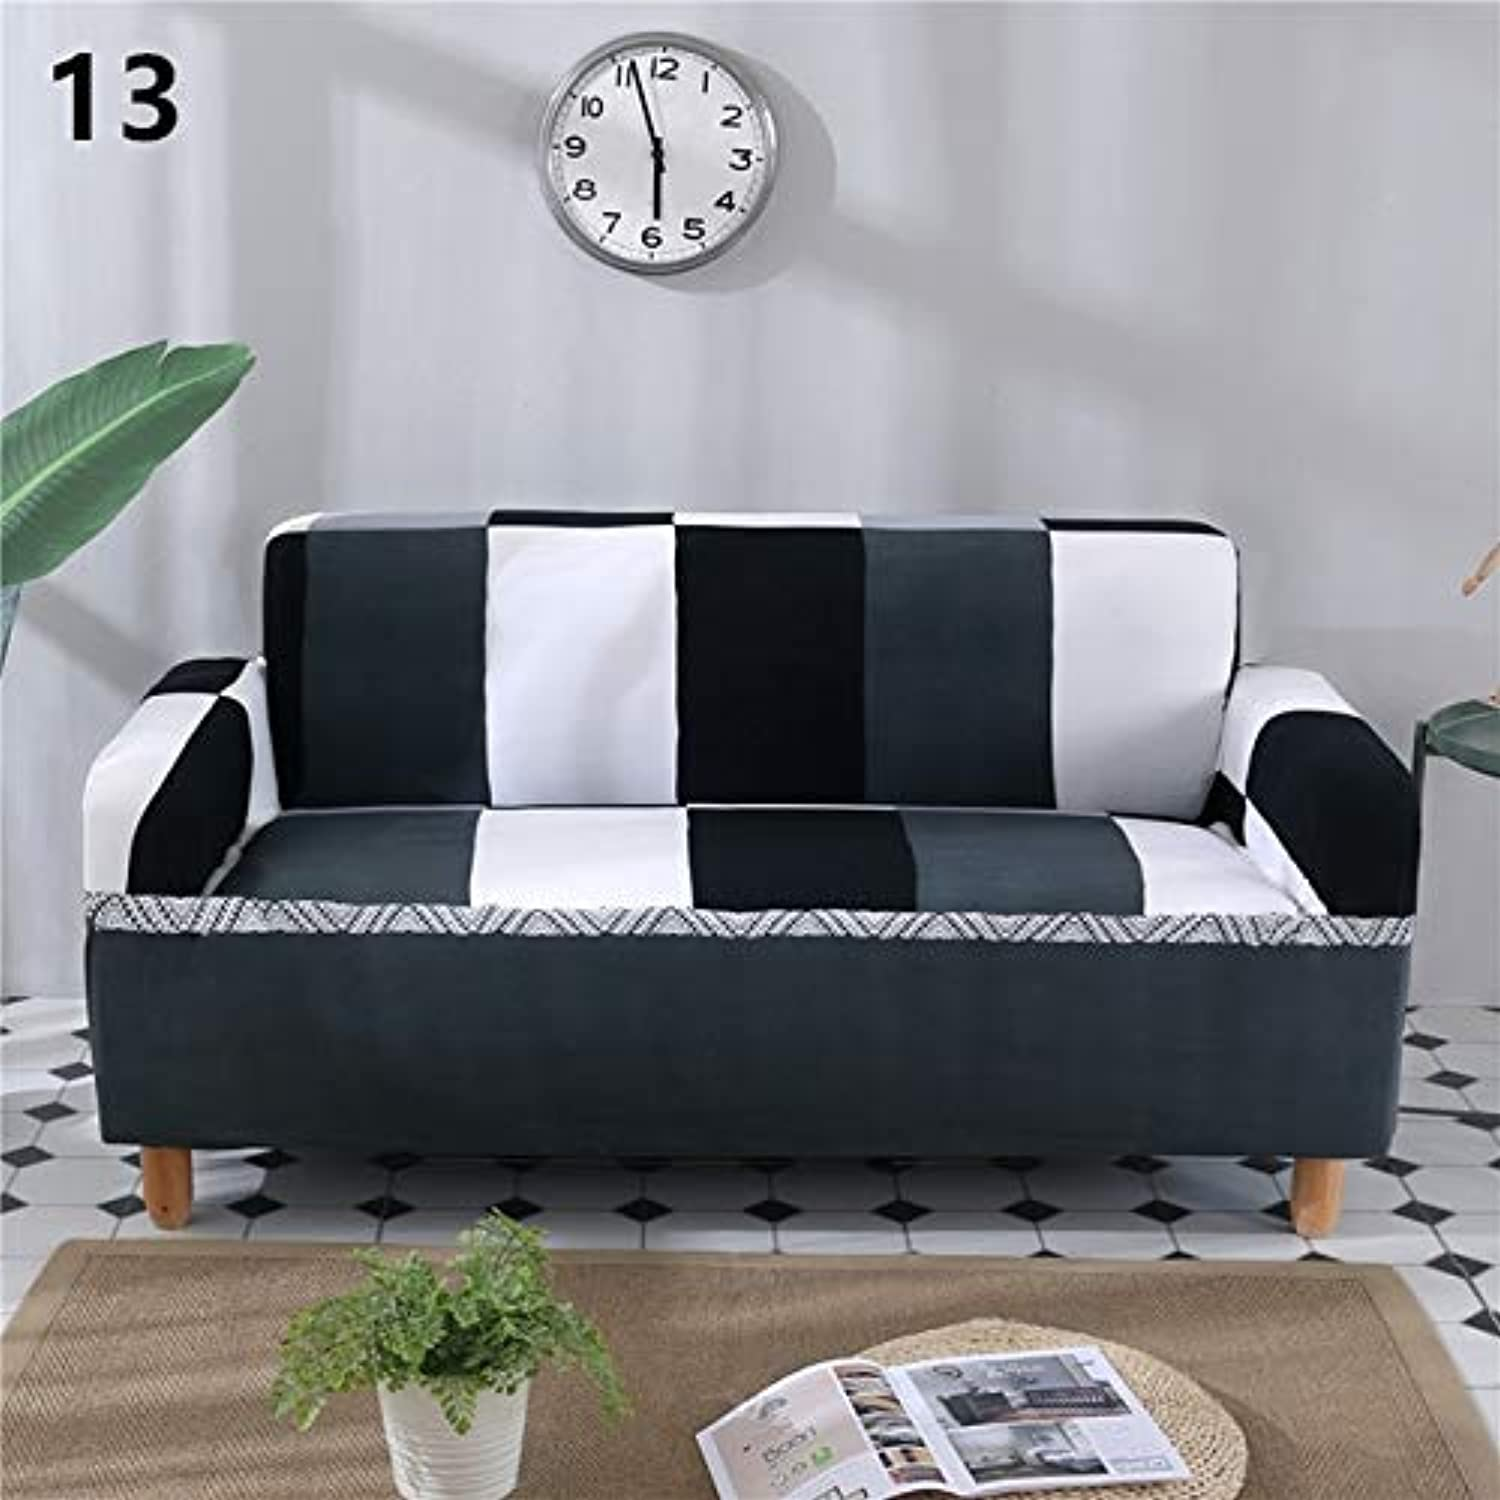 Elastic Sofa Cover Printed Flowers Slipcover Tight Wrap All-Inclusive Corner Sofa Cover Stretch Furniture Covers 1 2 3 4 Seater   13, 145x185cm